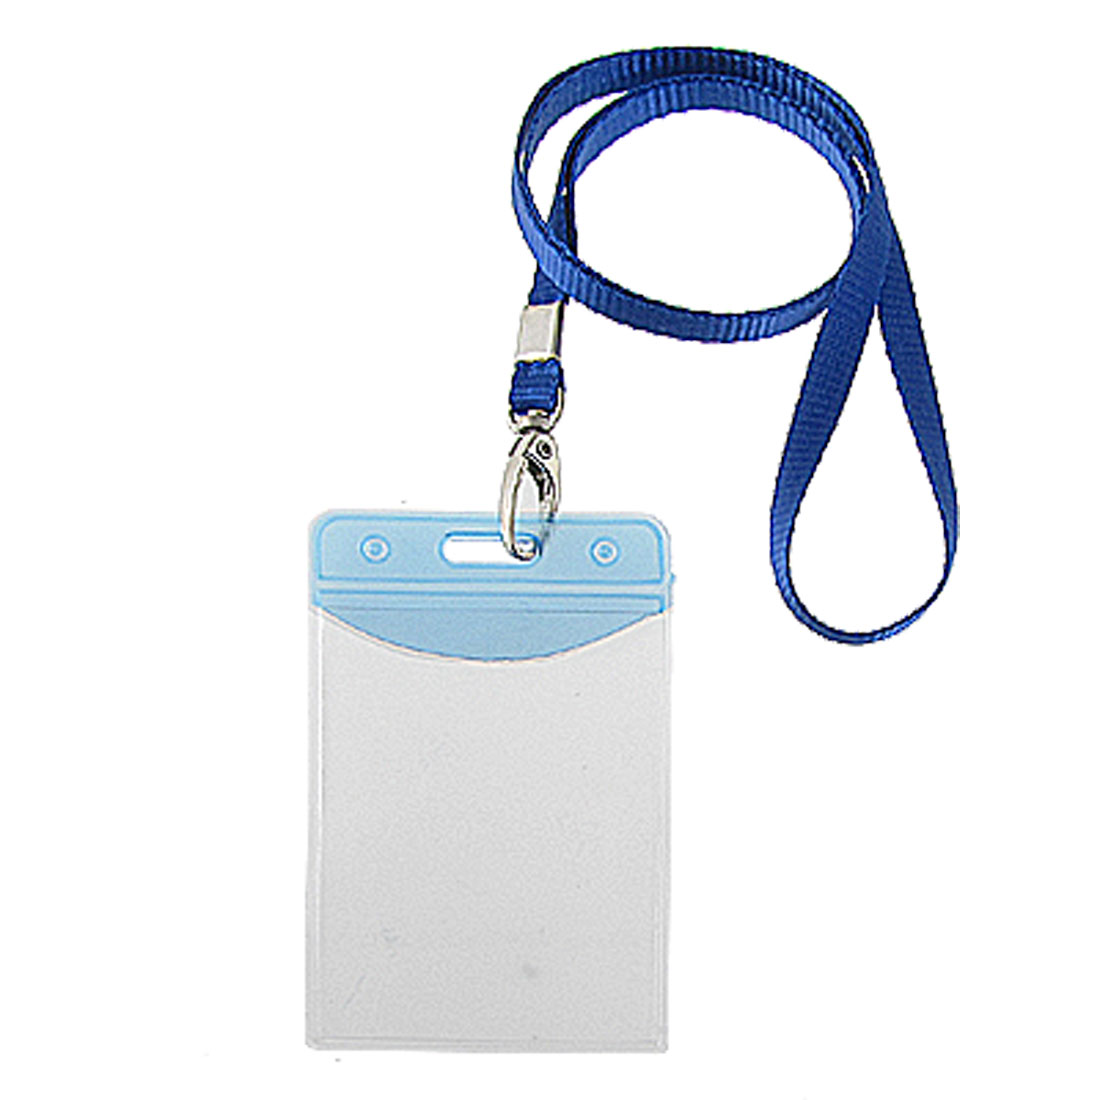 2 Pcs Clear Vertical IC ID Name Cards Holders w Strap